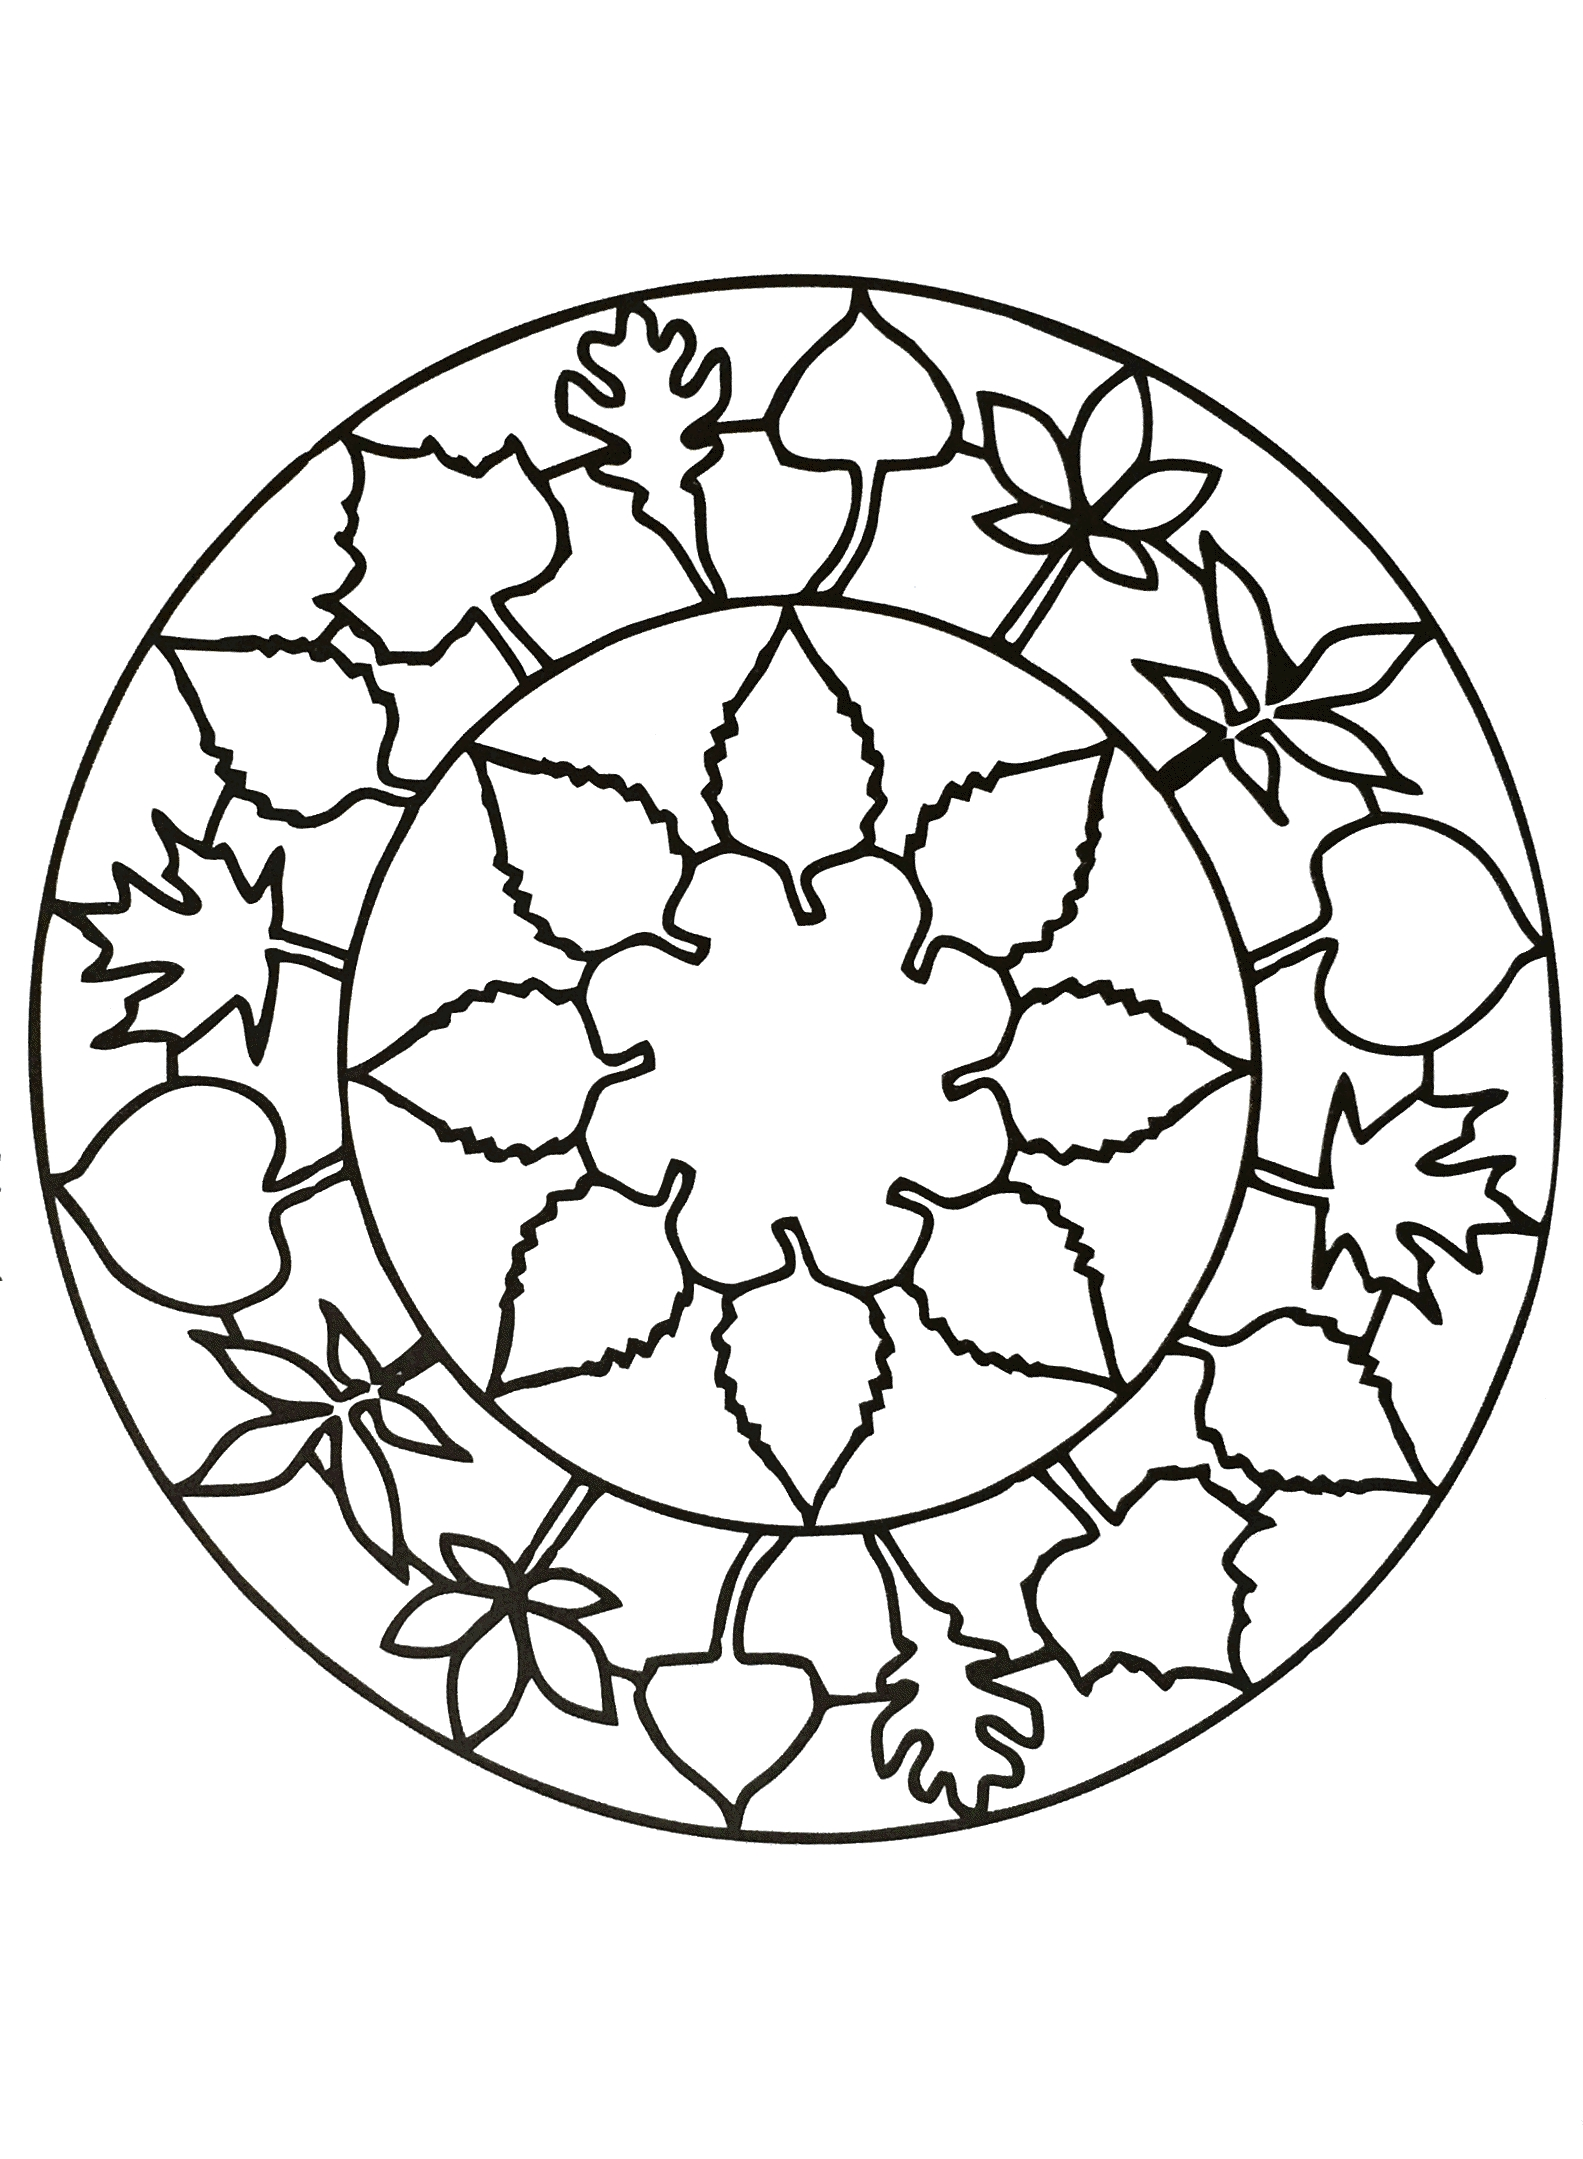 zen coloring pages - image=flowers ve ation mandala flower 3